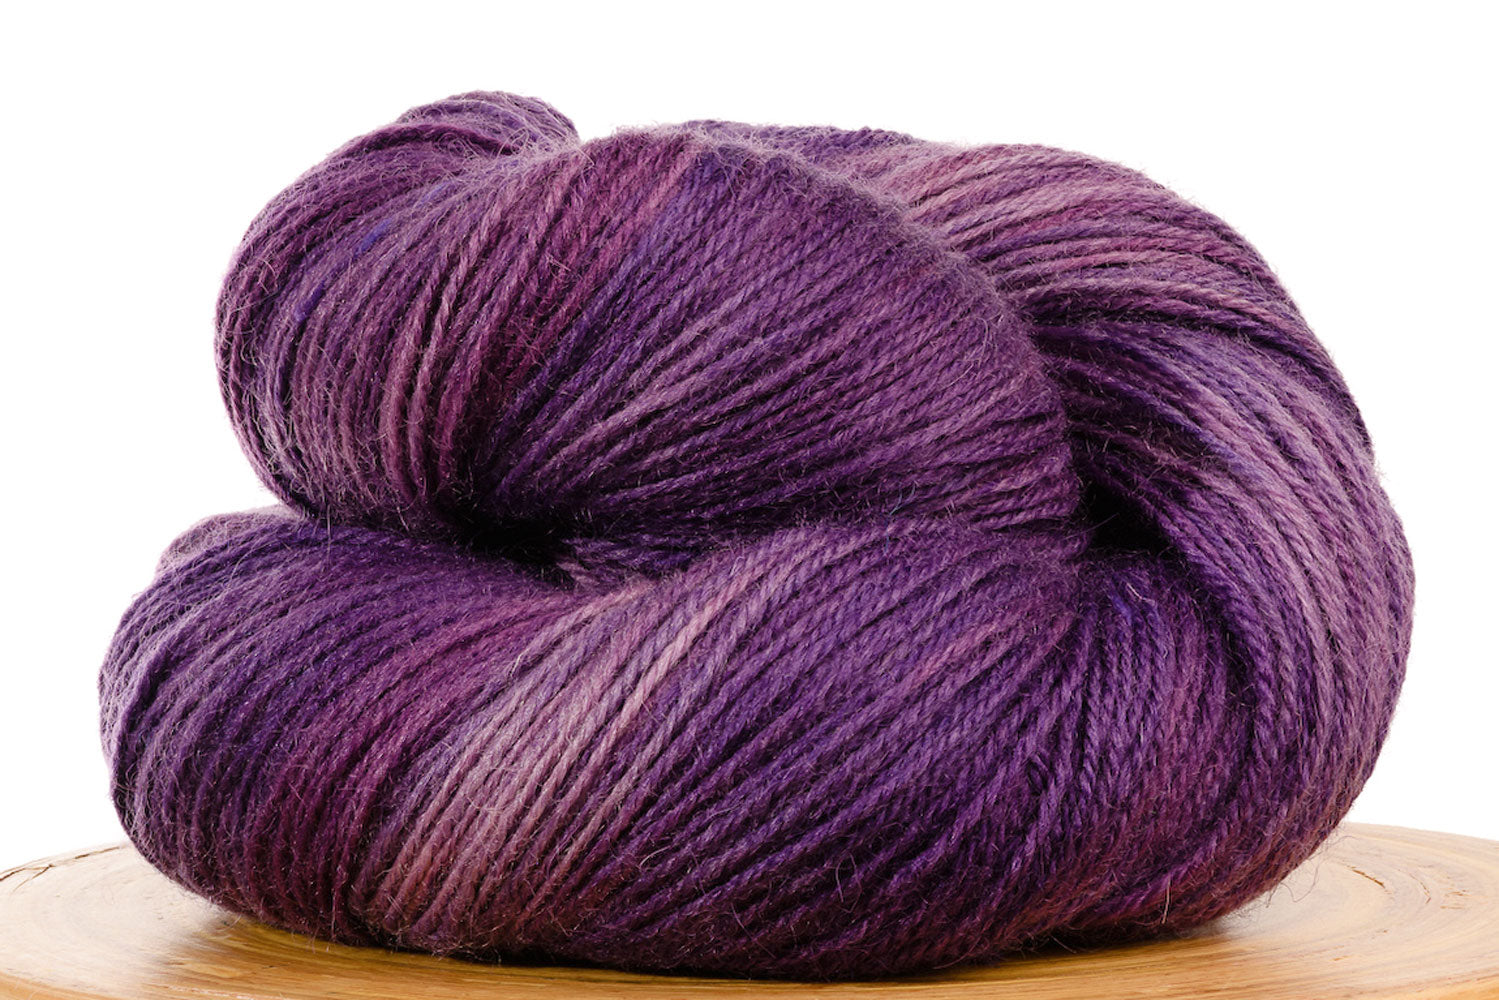 Pizzicato hand-dyed BFL sock yarn in Larkspur